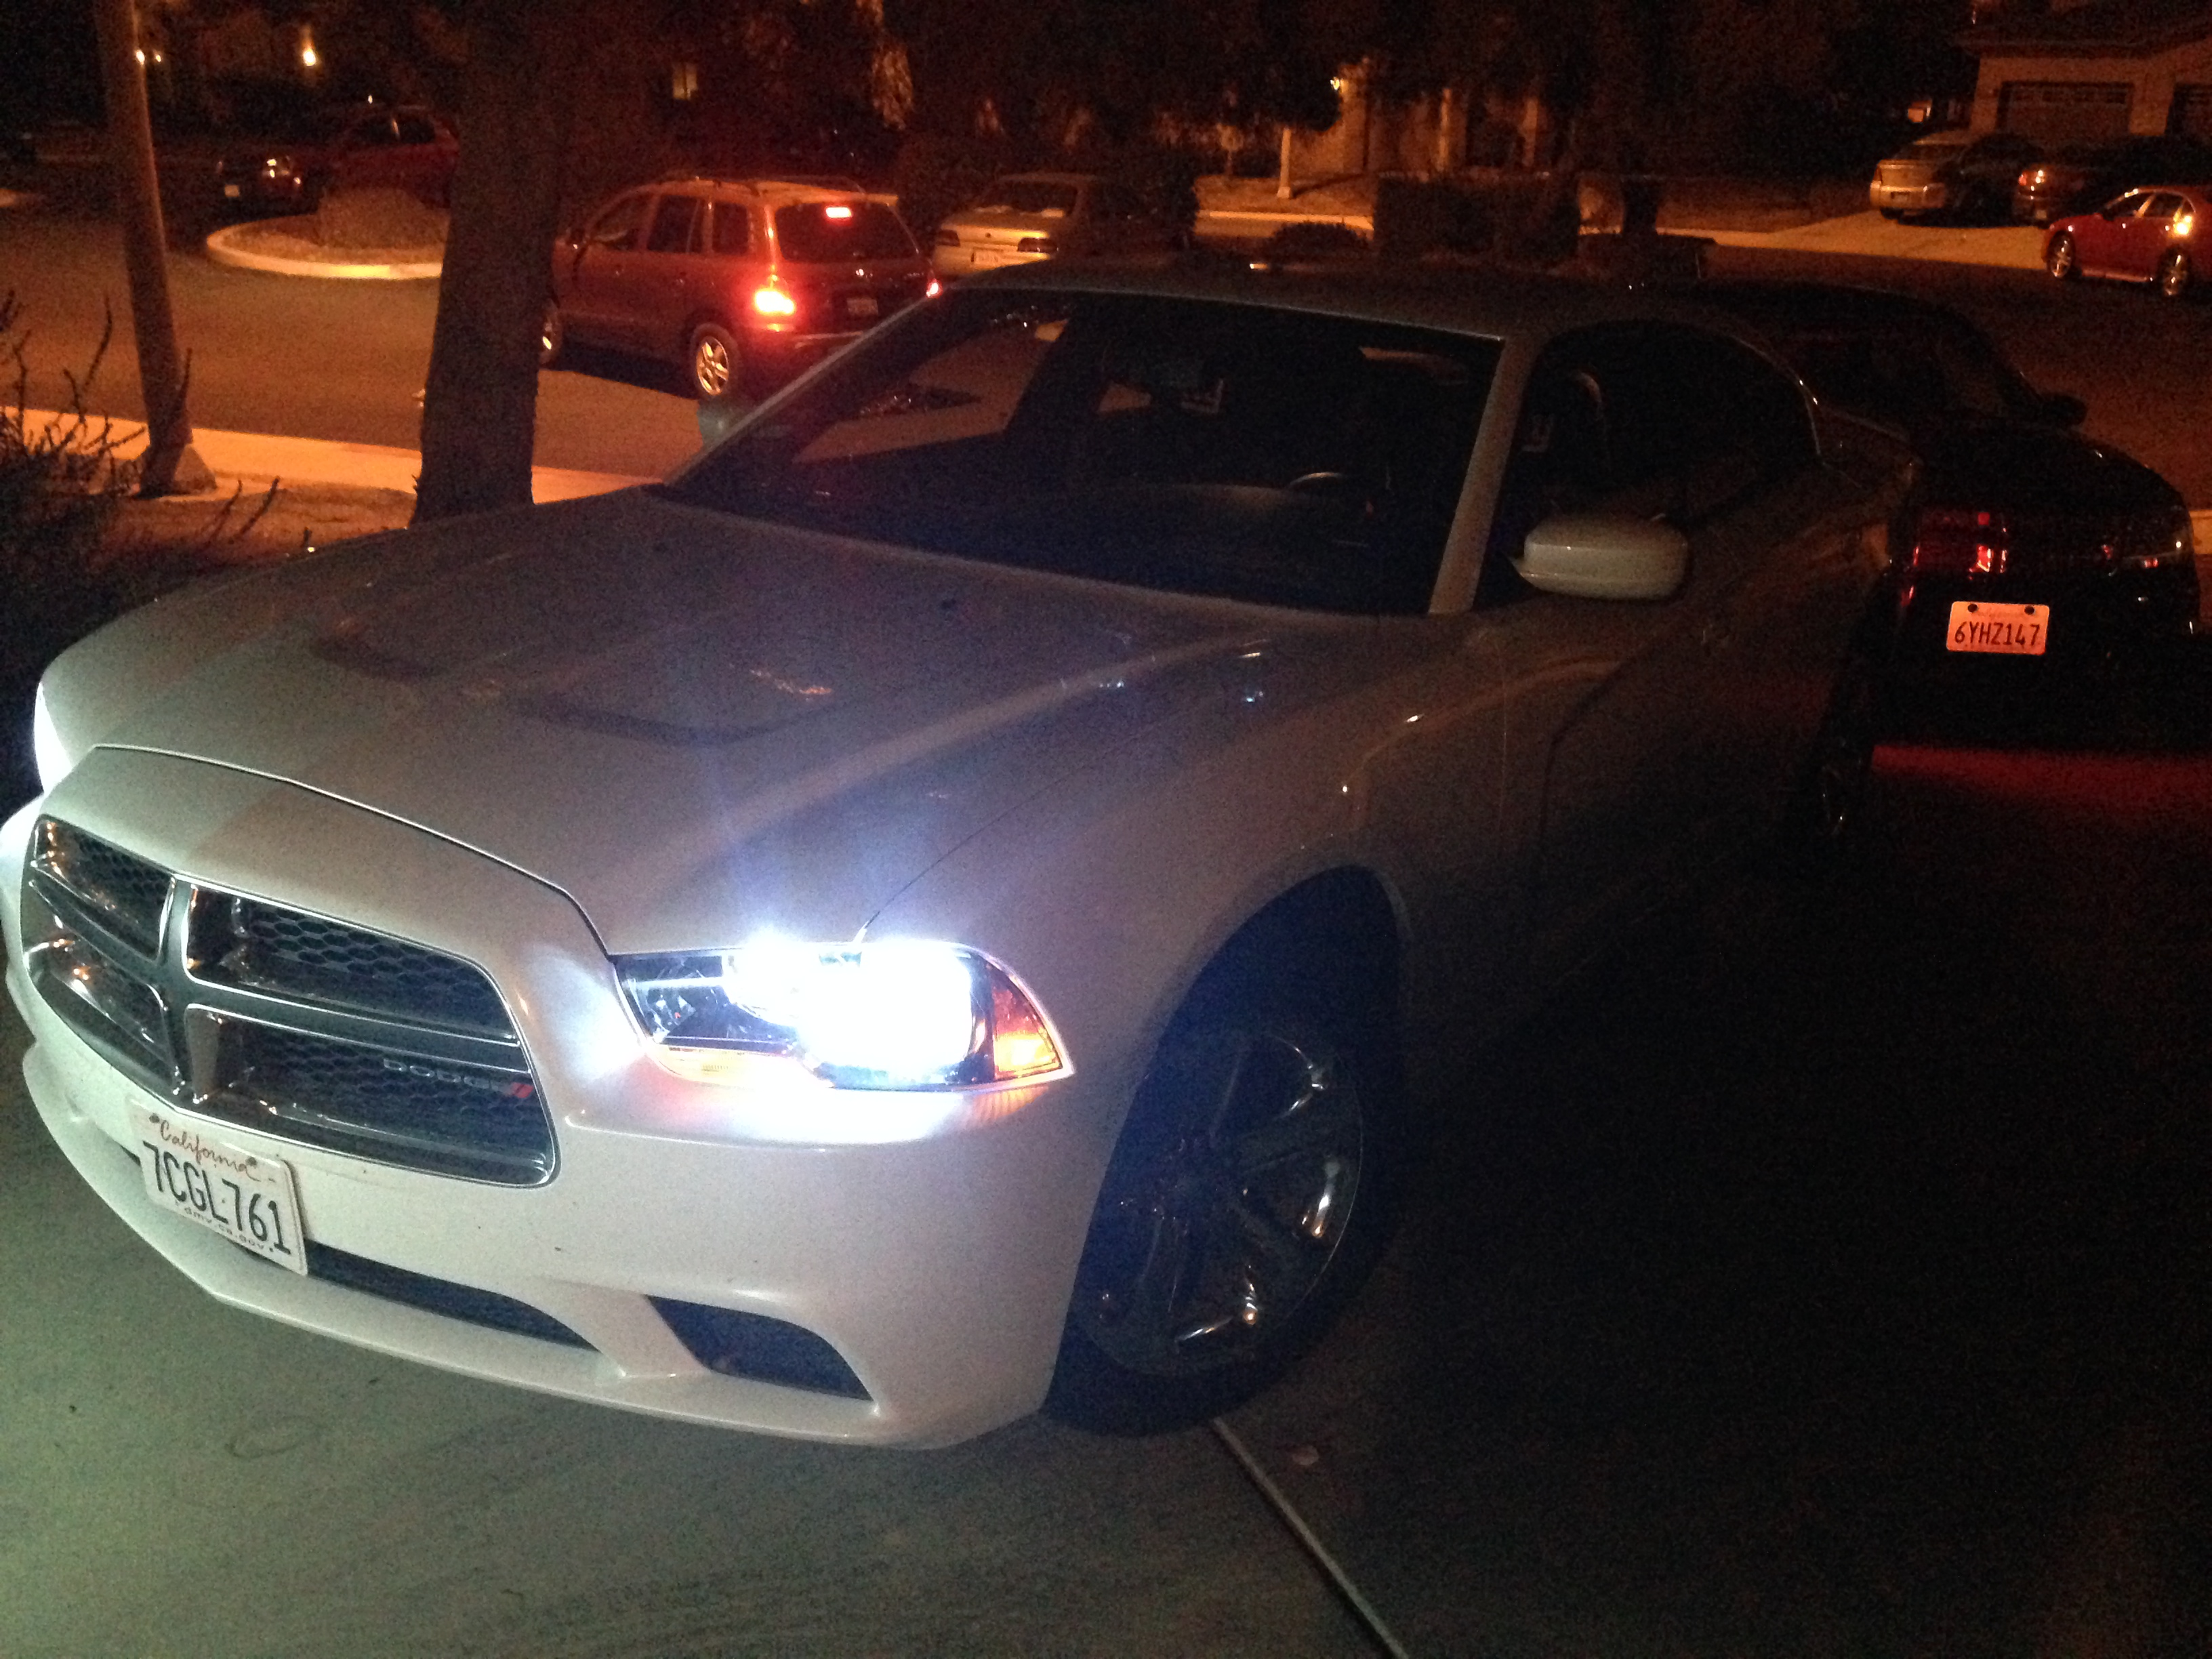 jerseyboy88's 2013 Dodge Charger